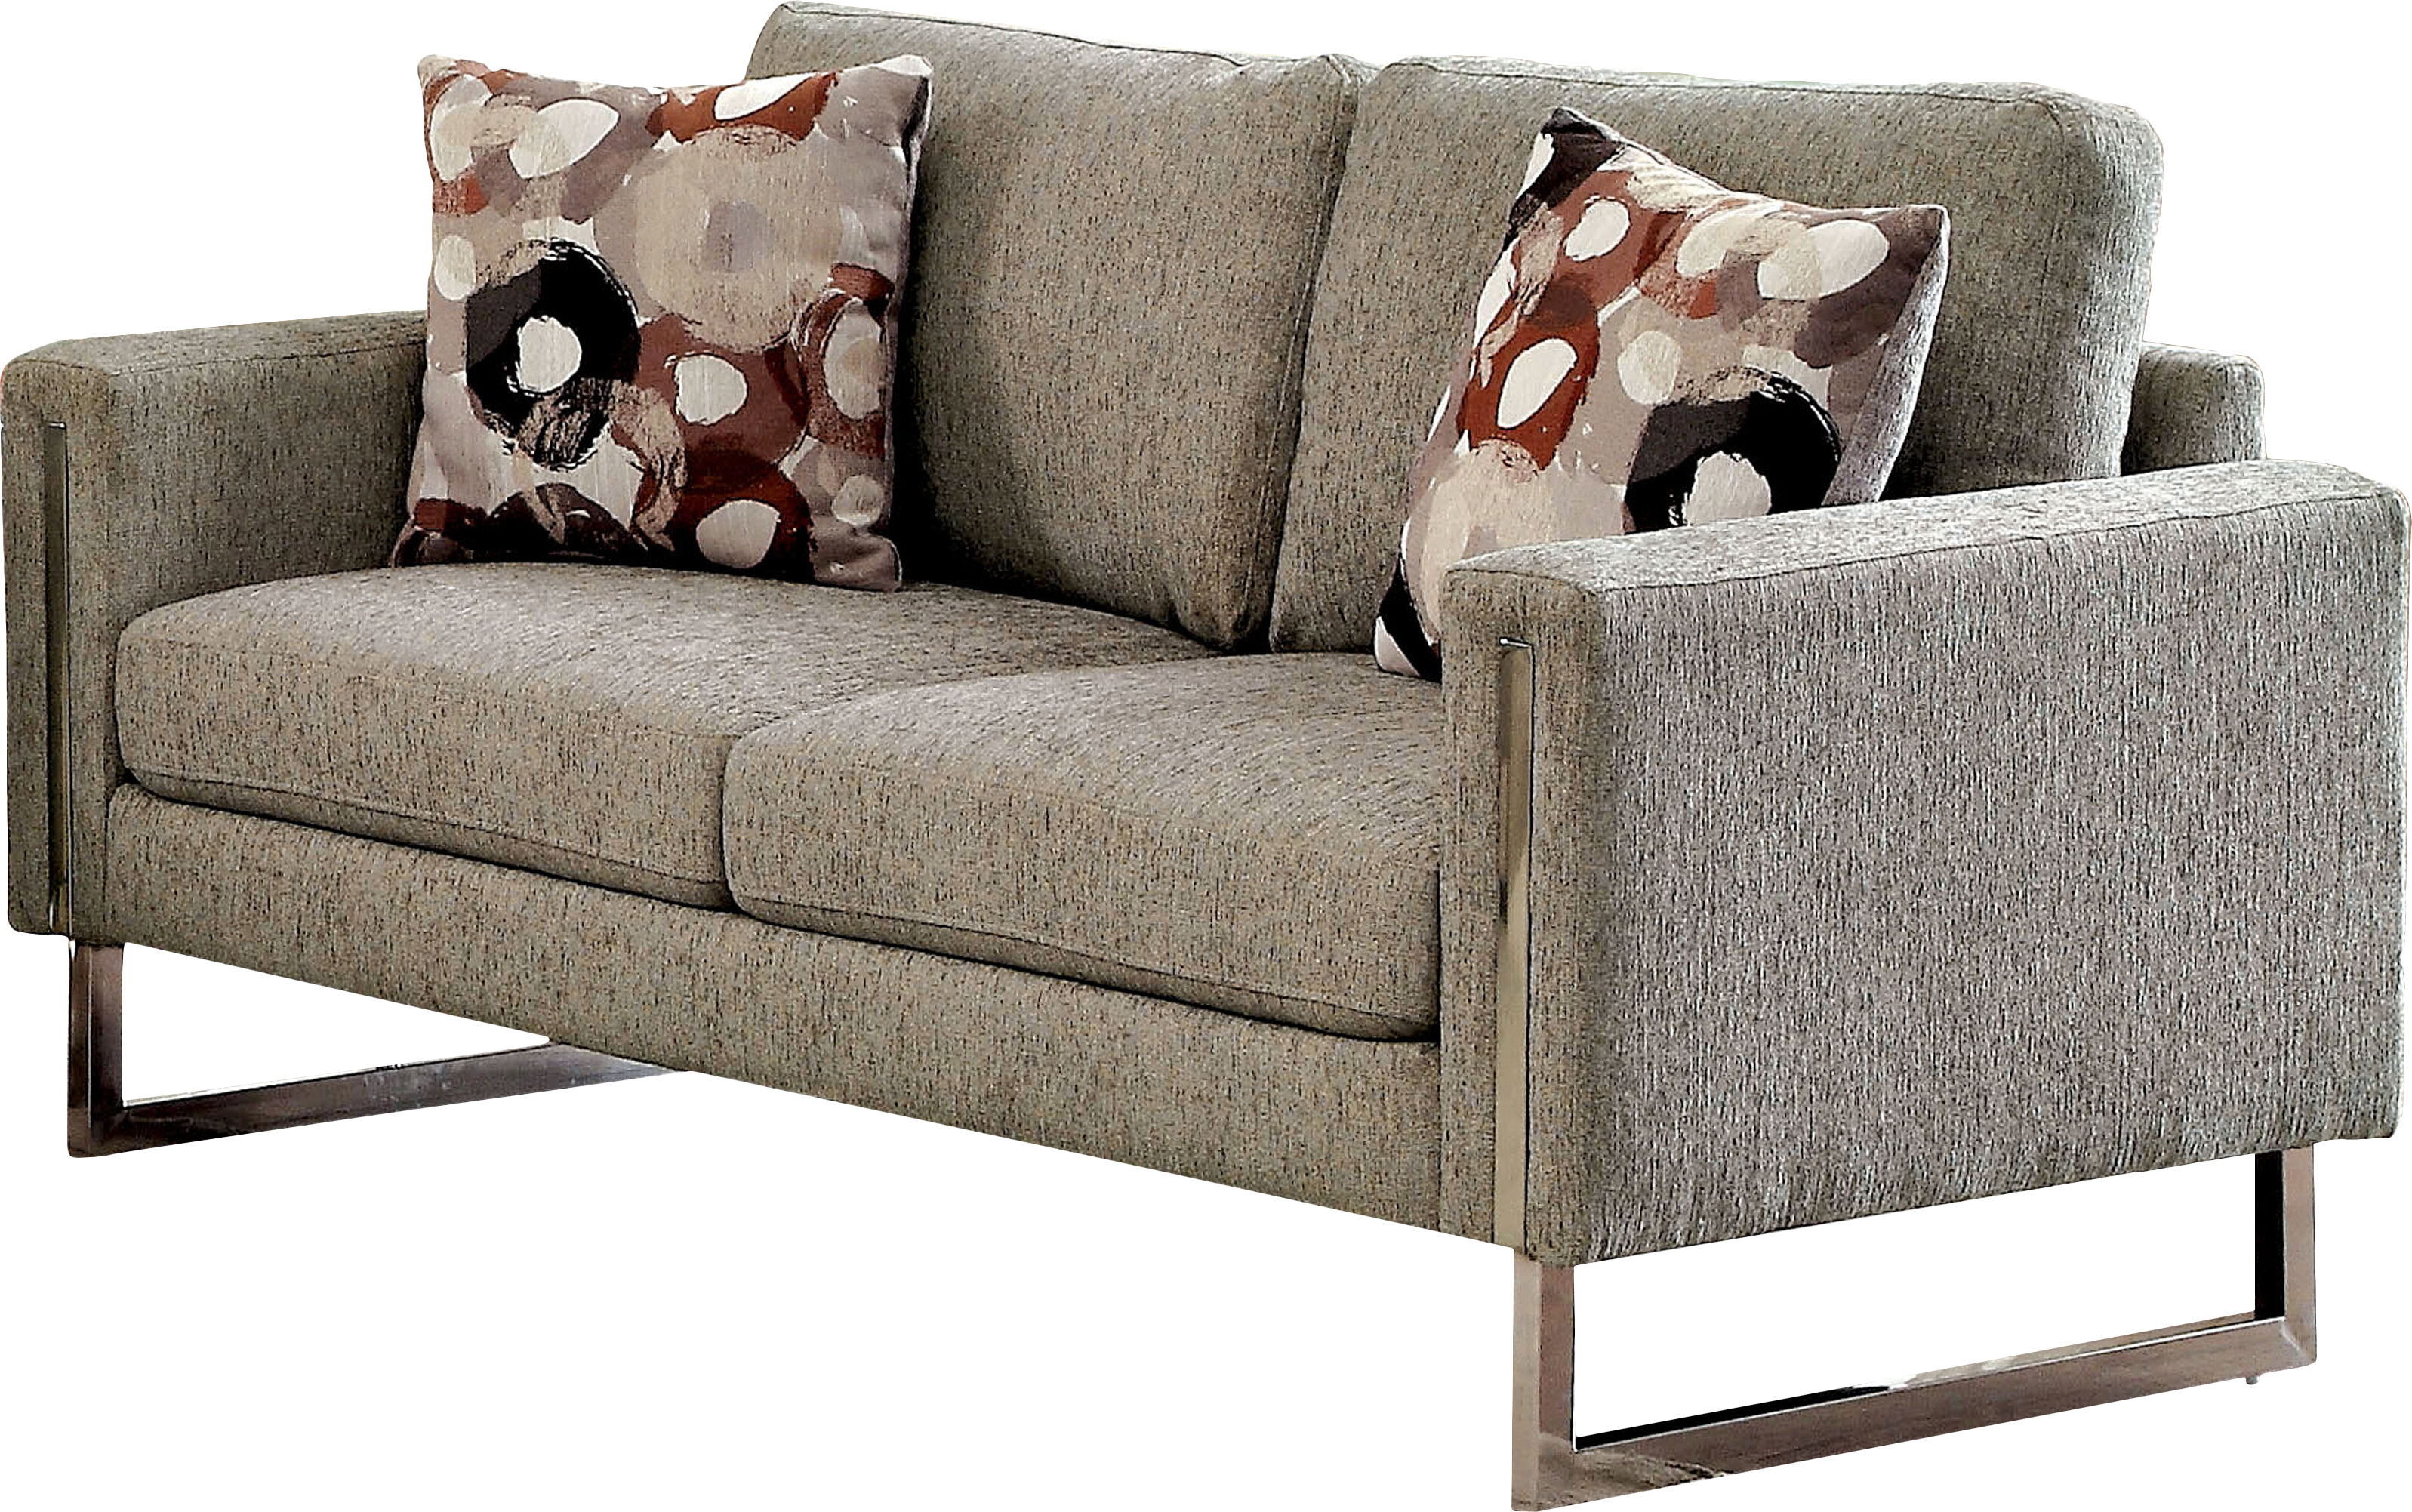 reviews at furniture loveseat pdx futon serta home wayfair artesia